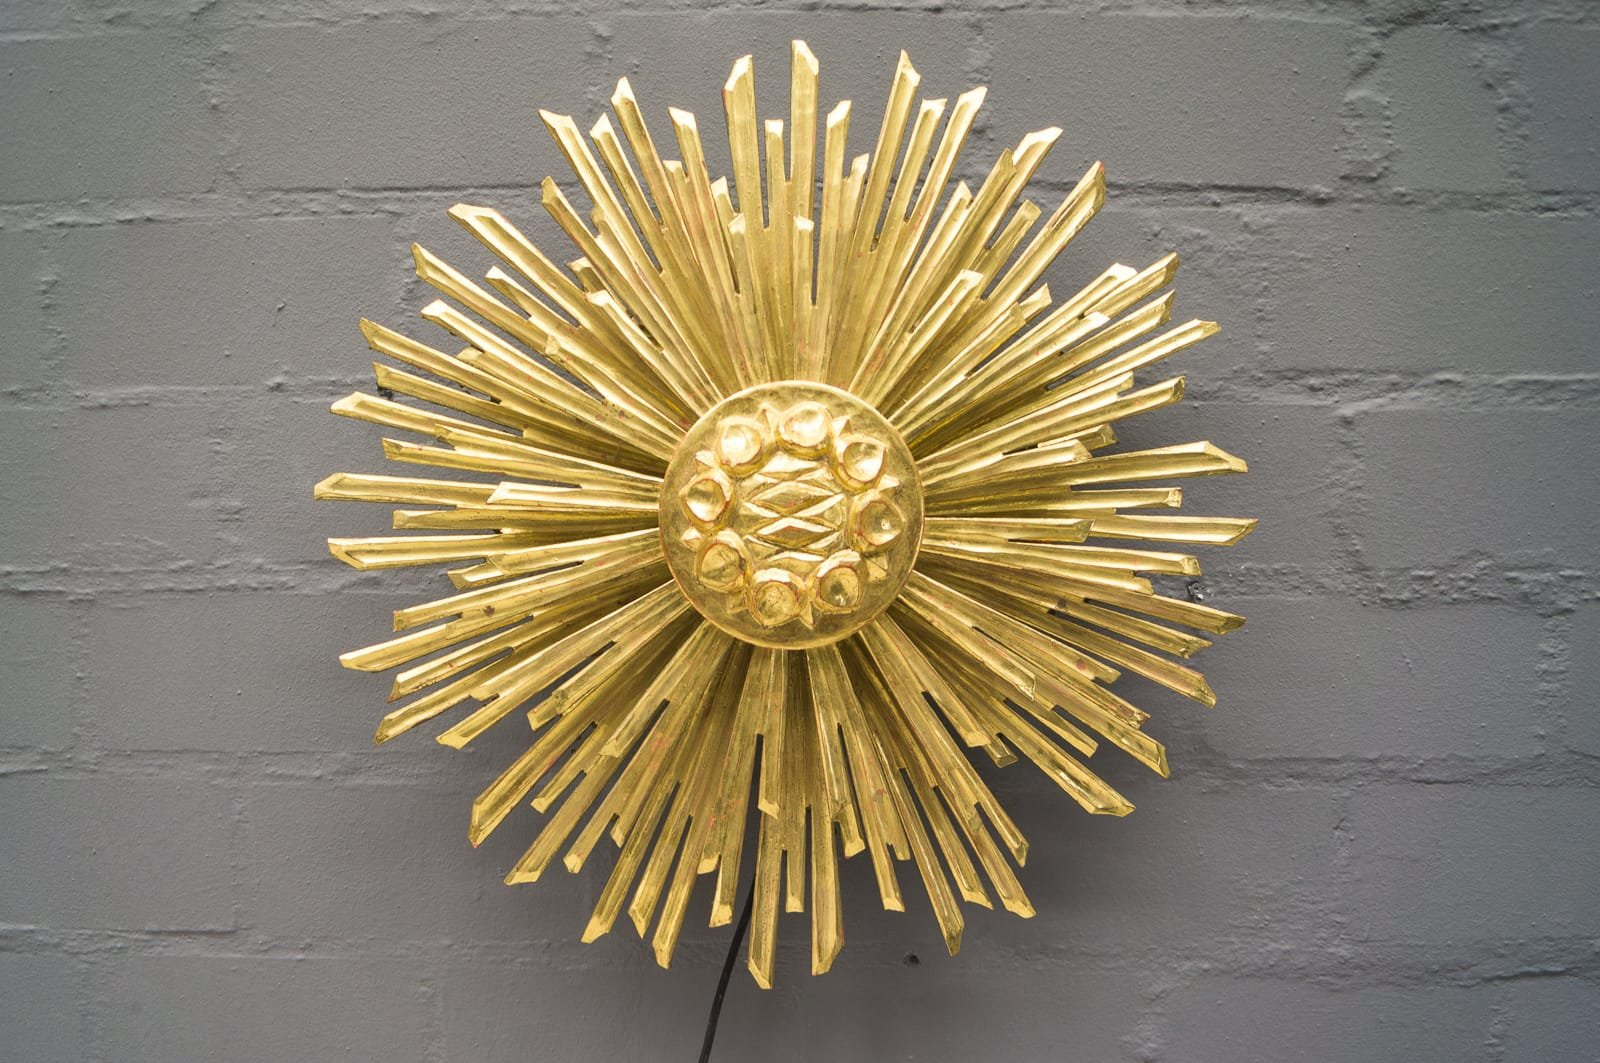 Large Wooden Sunburst Wall Lamp, 1960s for sale at Pamono